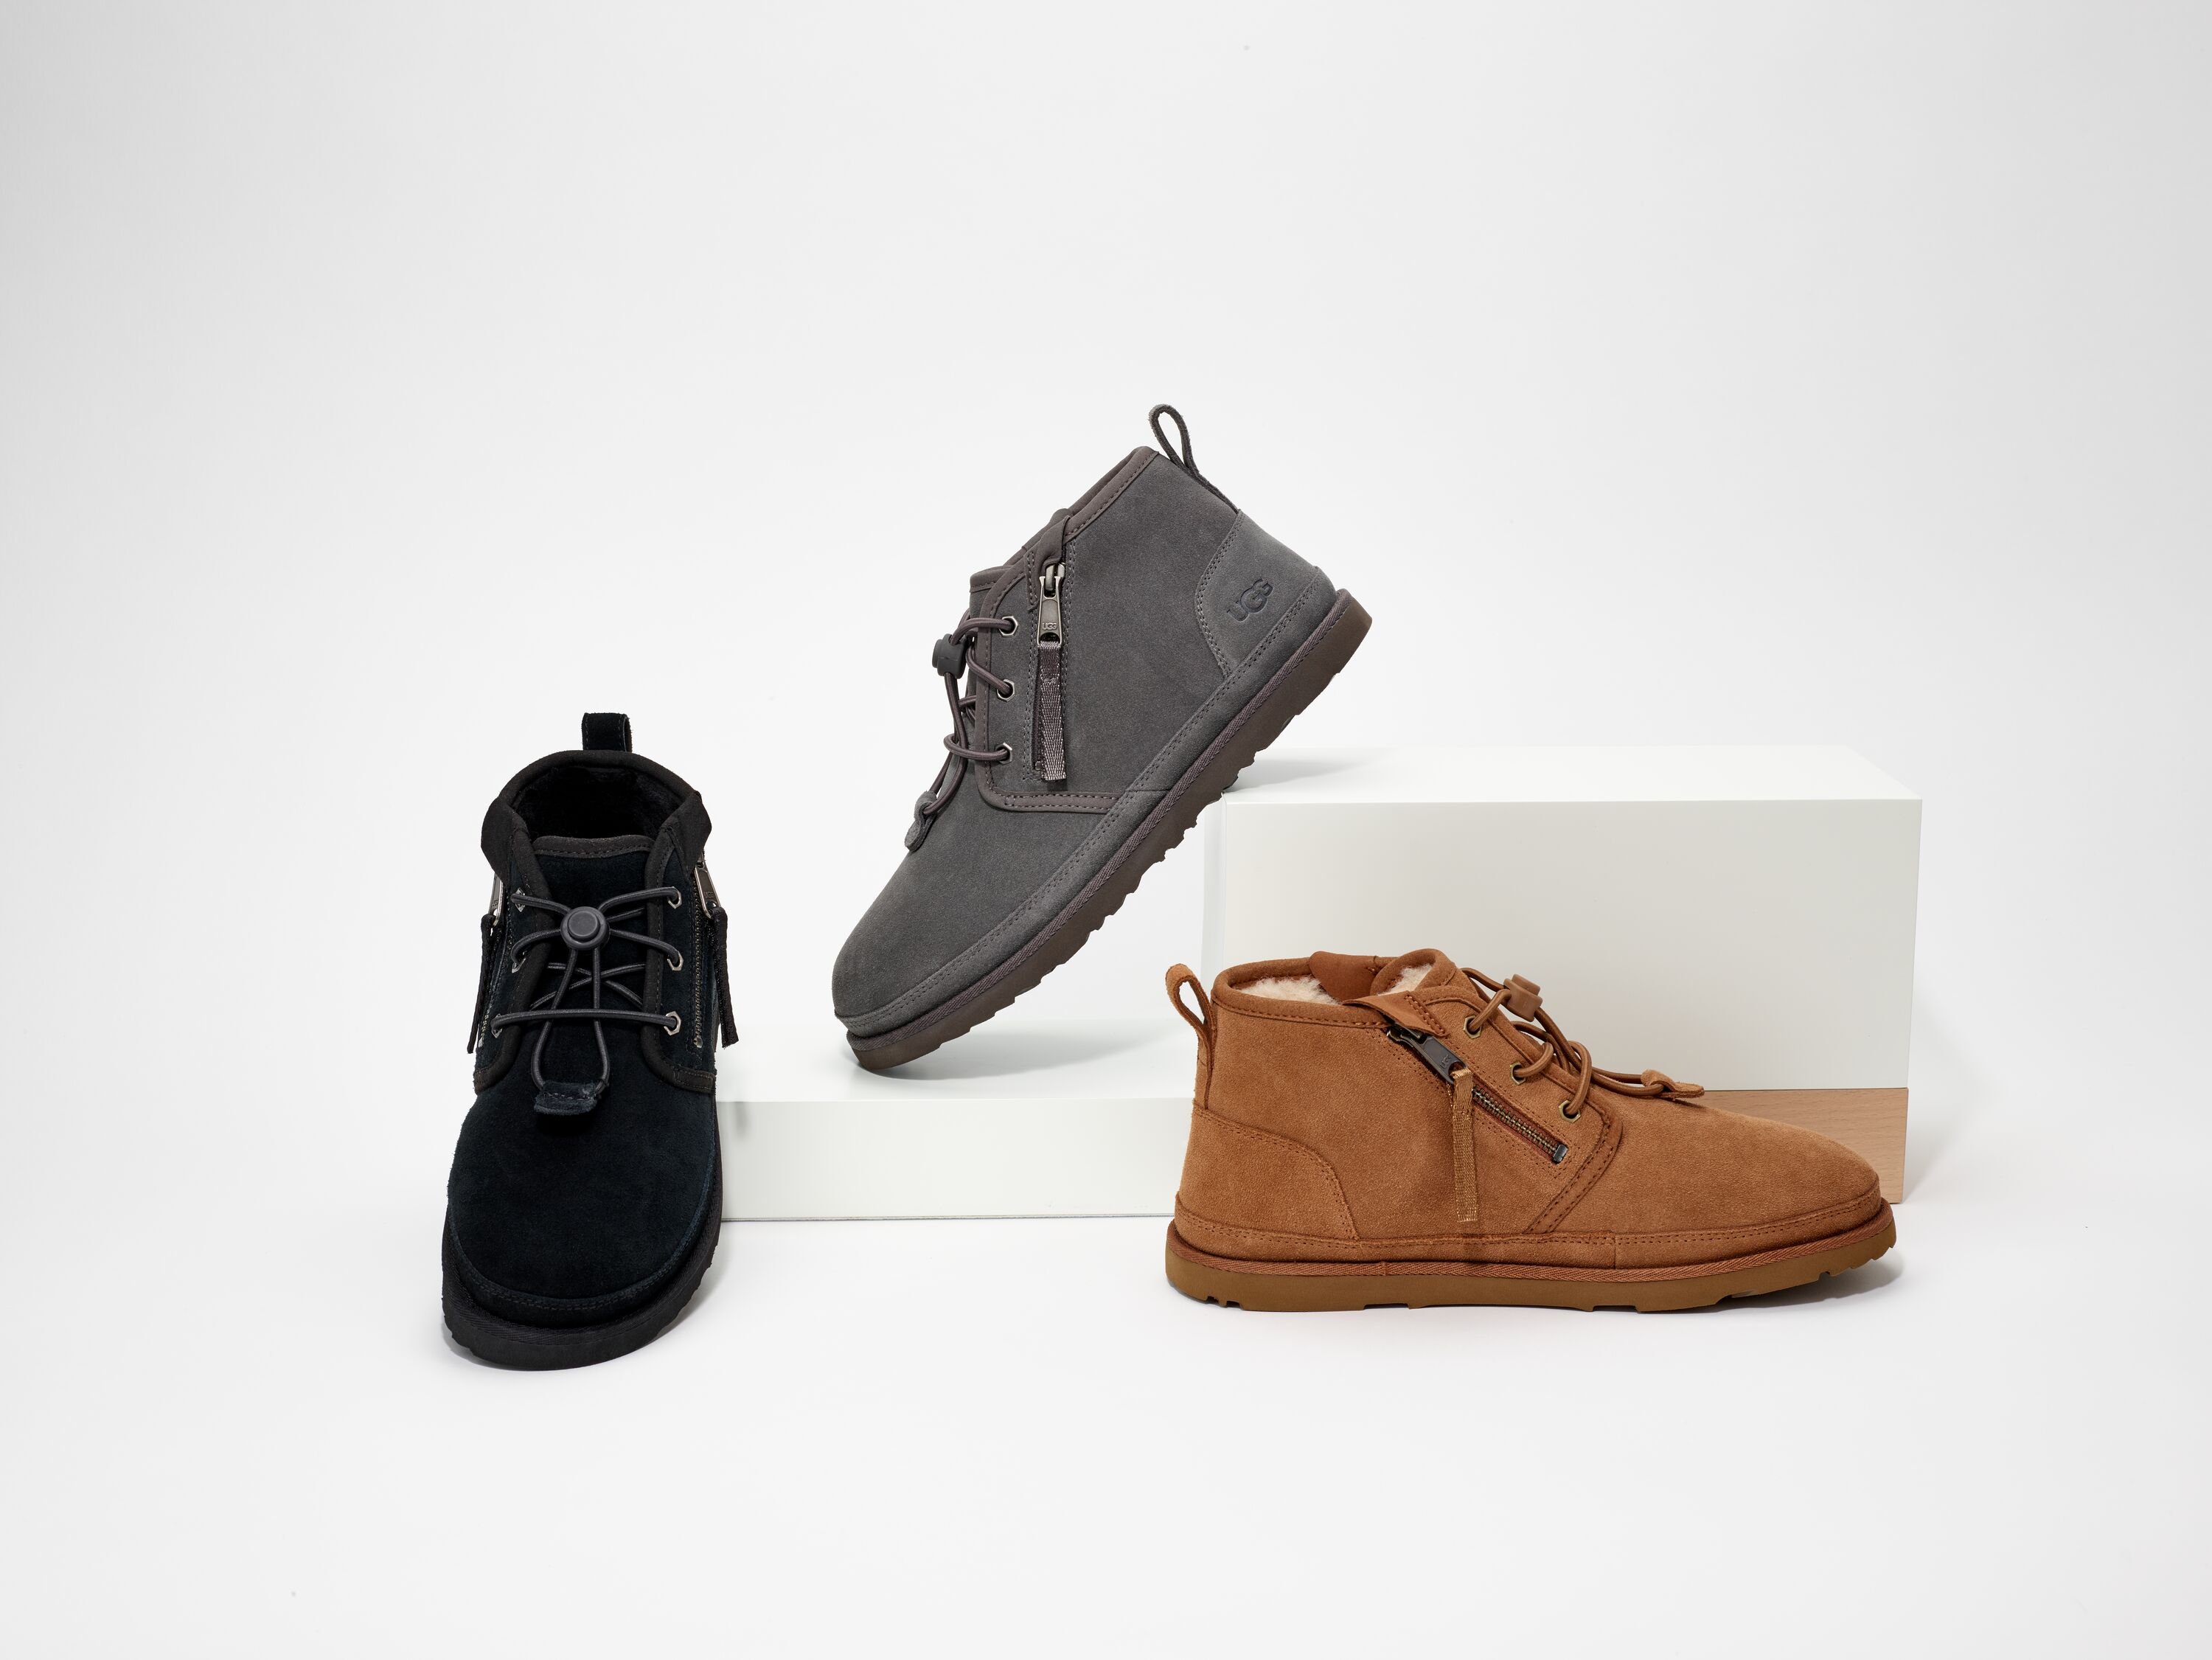 Ugg and Zappos Launch Inclusive Shoe